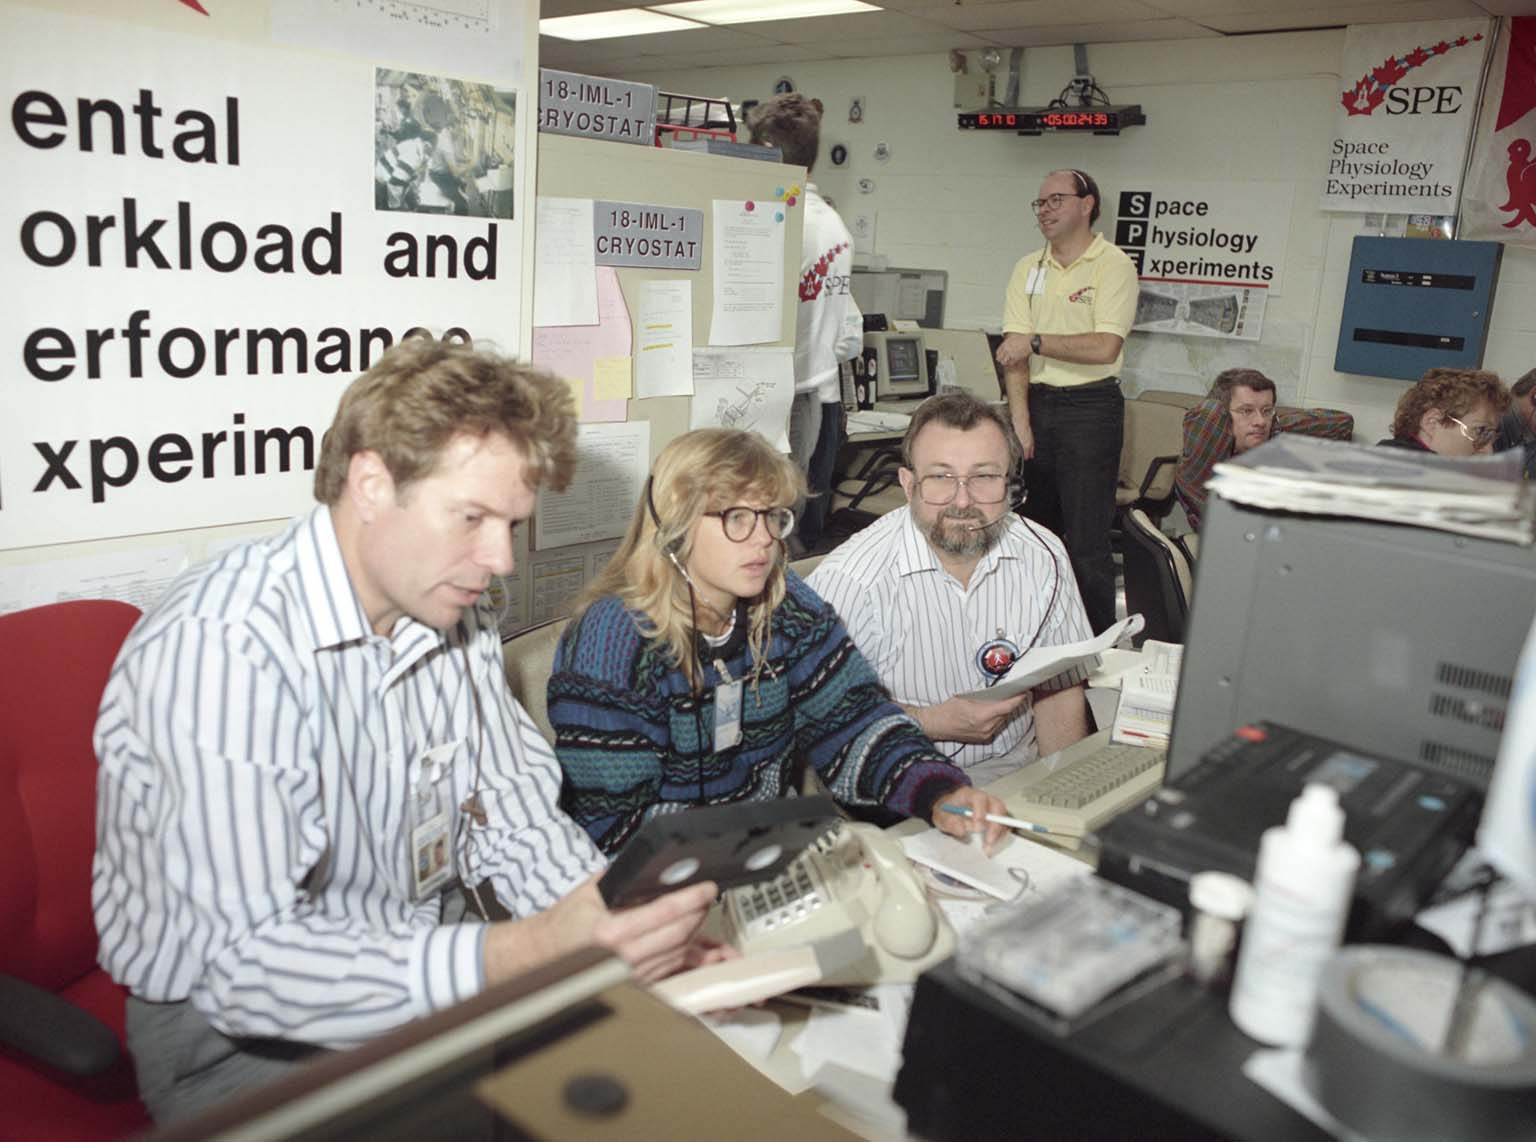 Mental Workload and Performance Experiment (MWPE) Team in the Spacelab Payload Operations Control Center (SL POCC) During the STS-42 IML-1 Mission